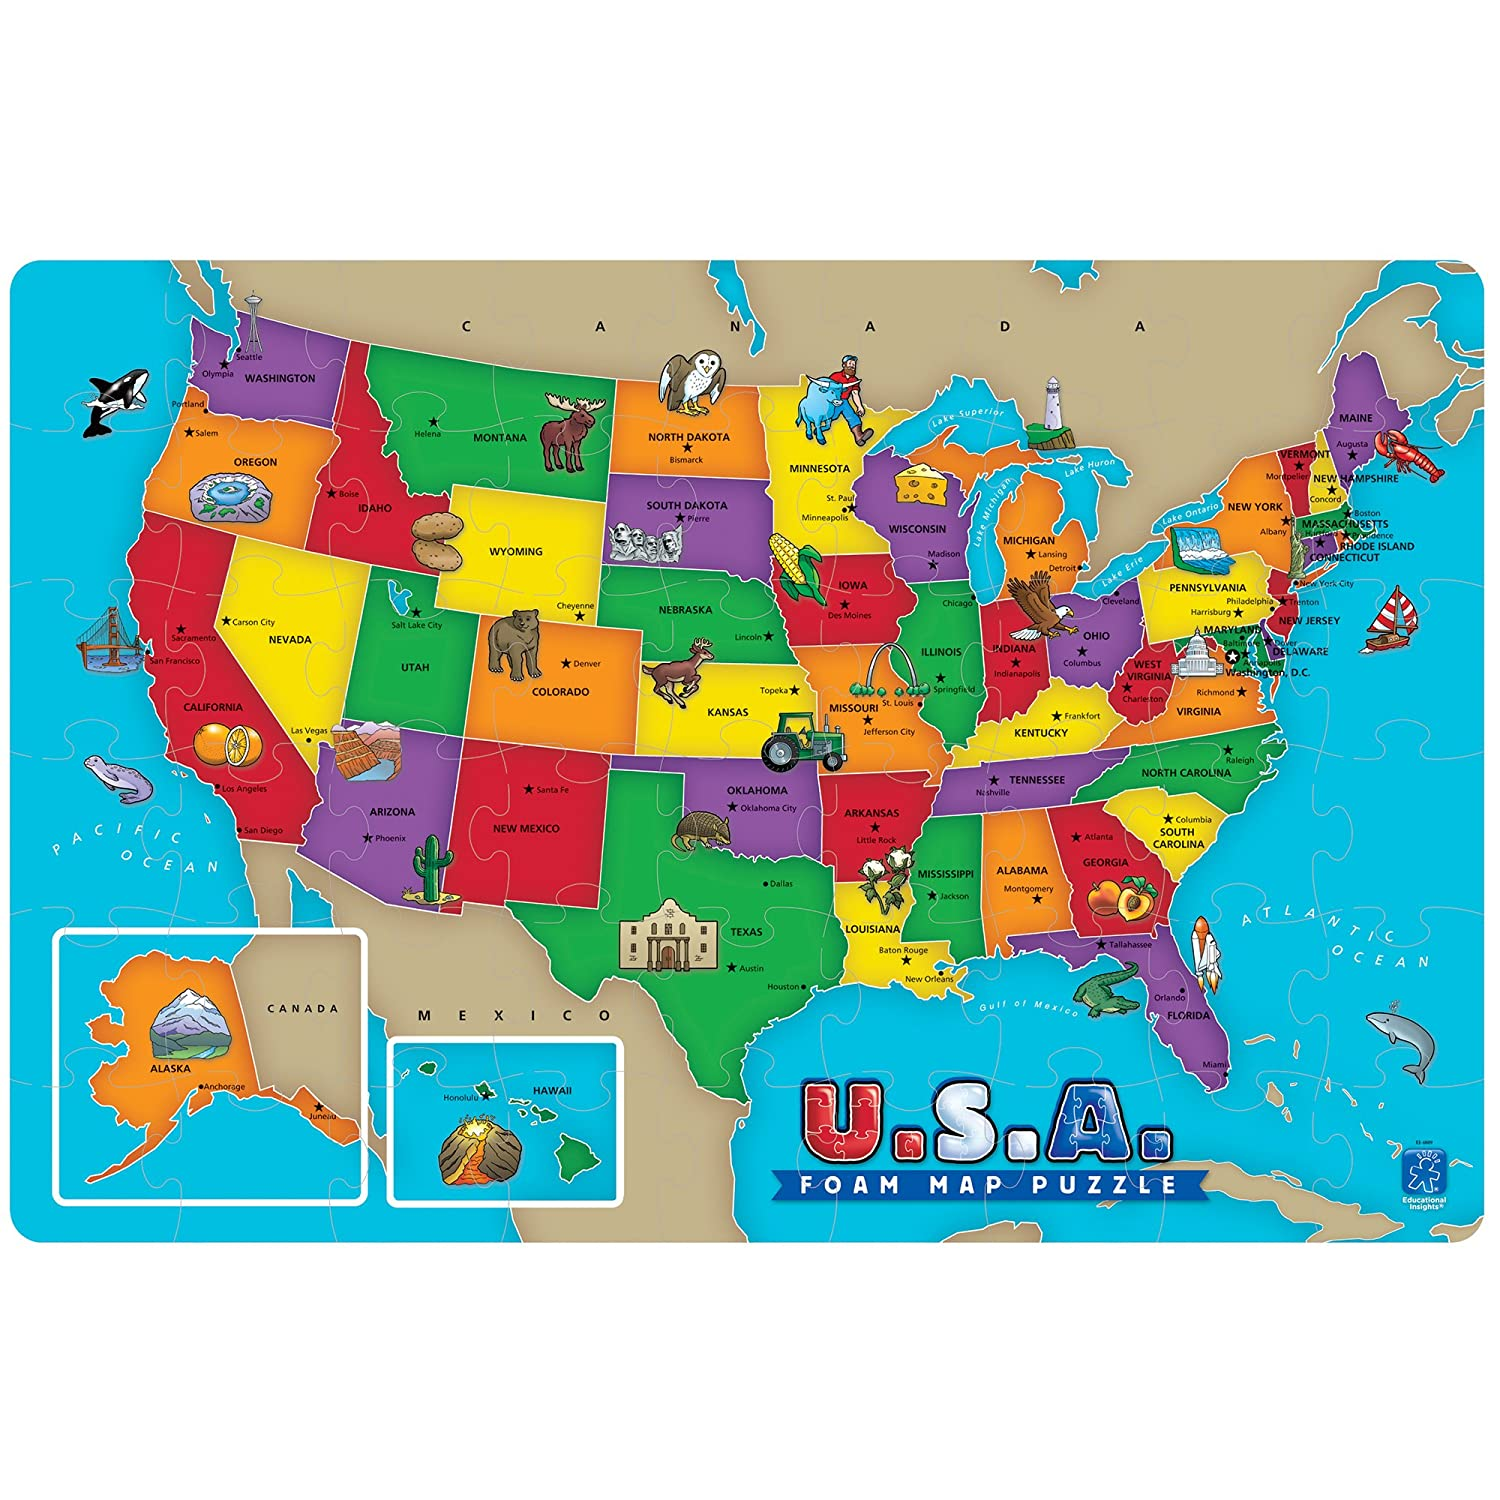 Amazoncom Piece USA Foam Map Puzzle Toys Games - Usa map images